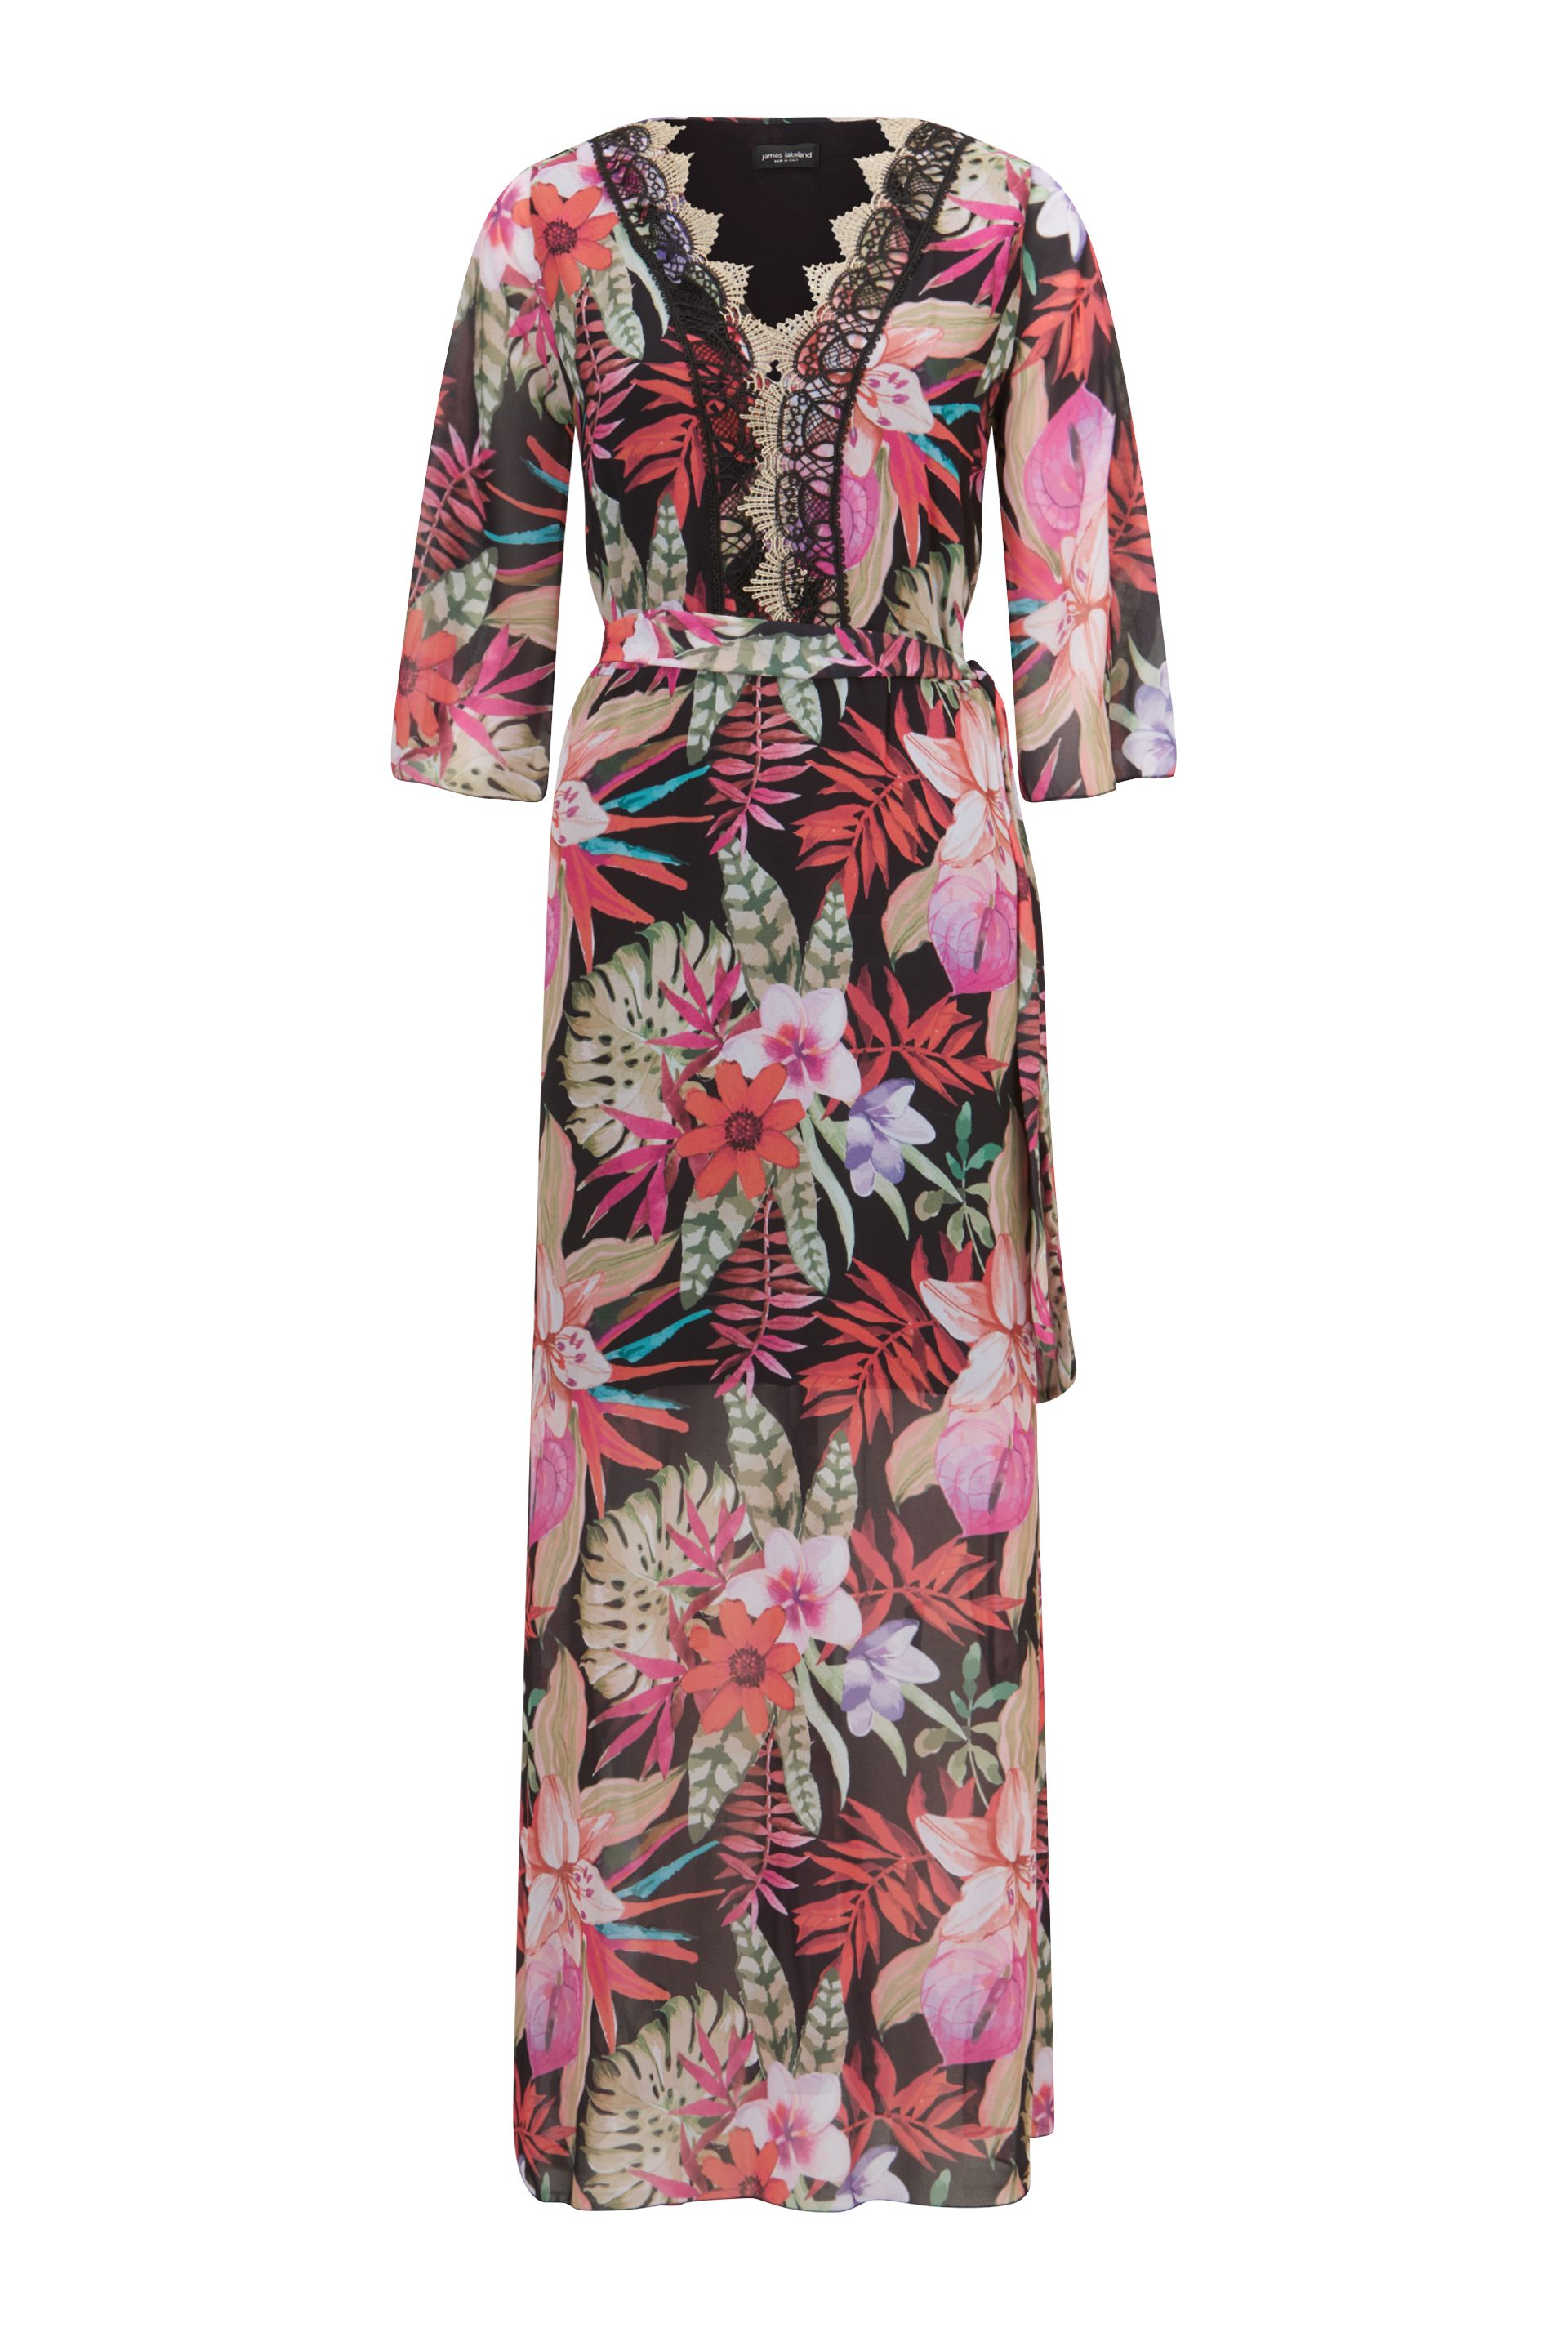 James Lakeland Floral Print Maxi Dress, Black